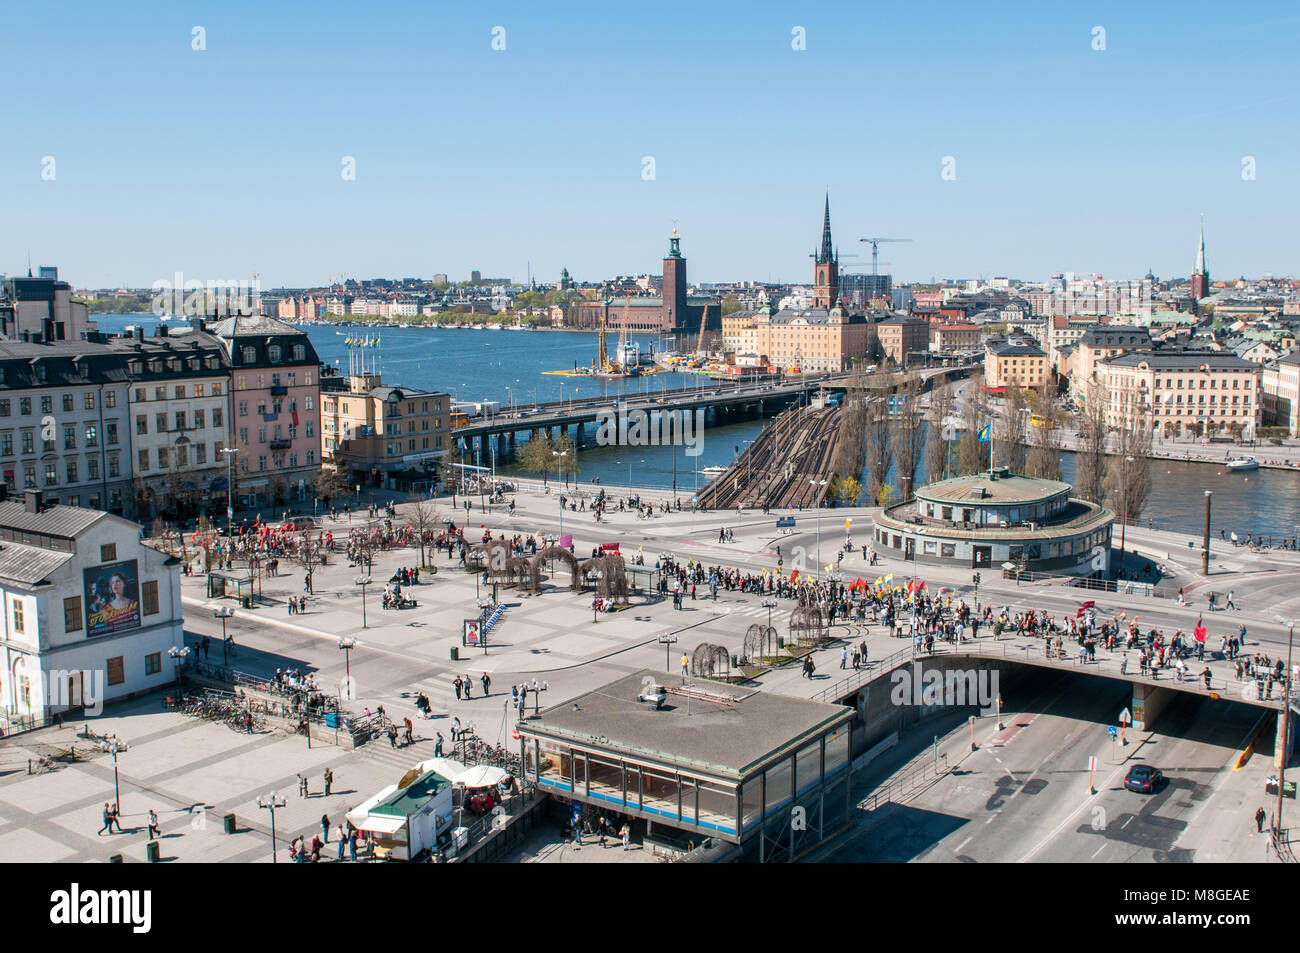 Aerial view from Katarina elevator during a demonstration at Slussen traffic hub on International Worker's day. - Stock Image